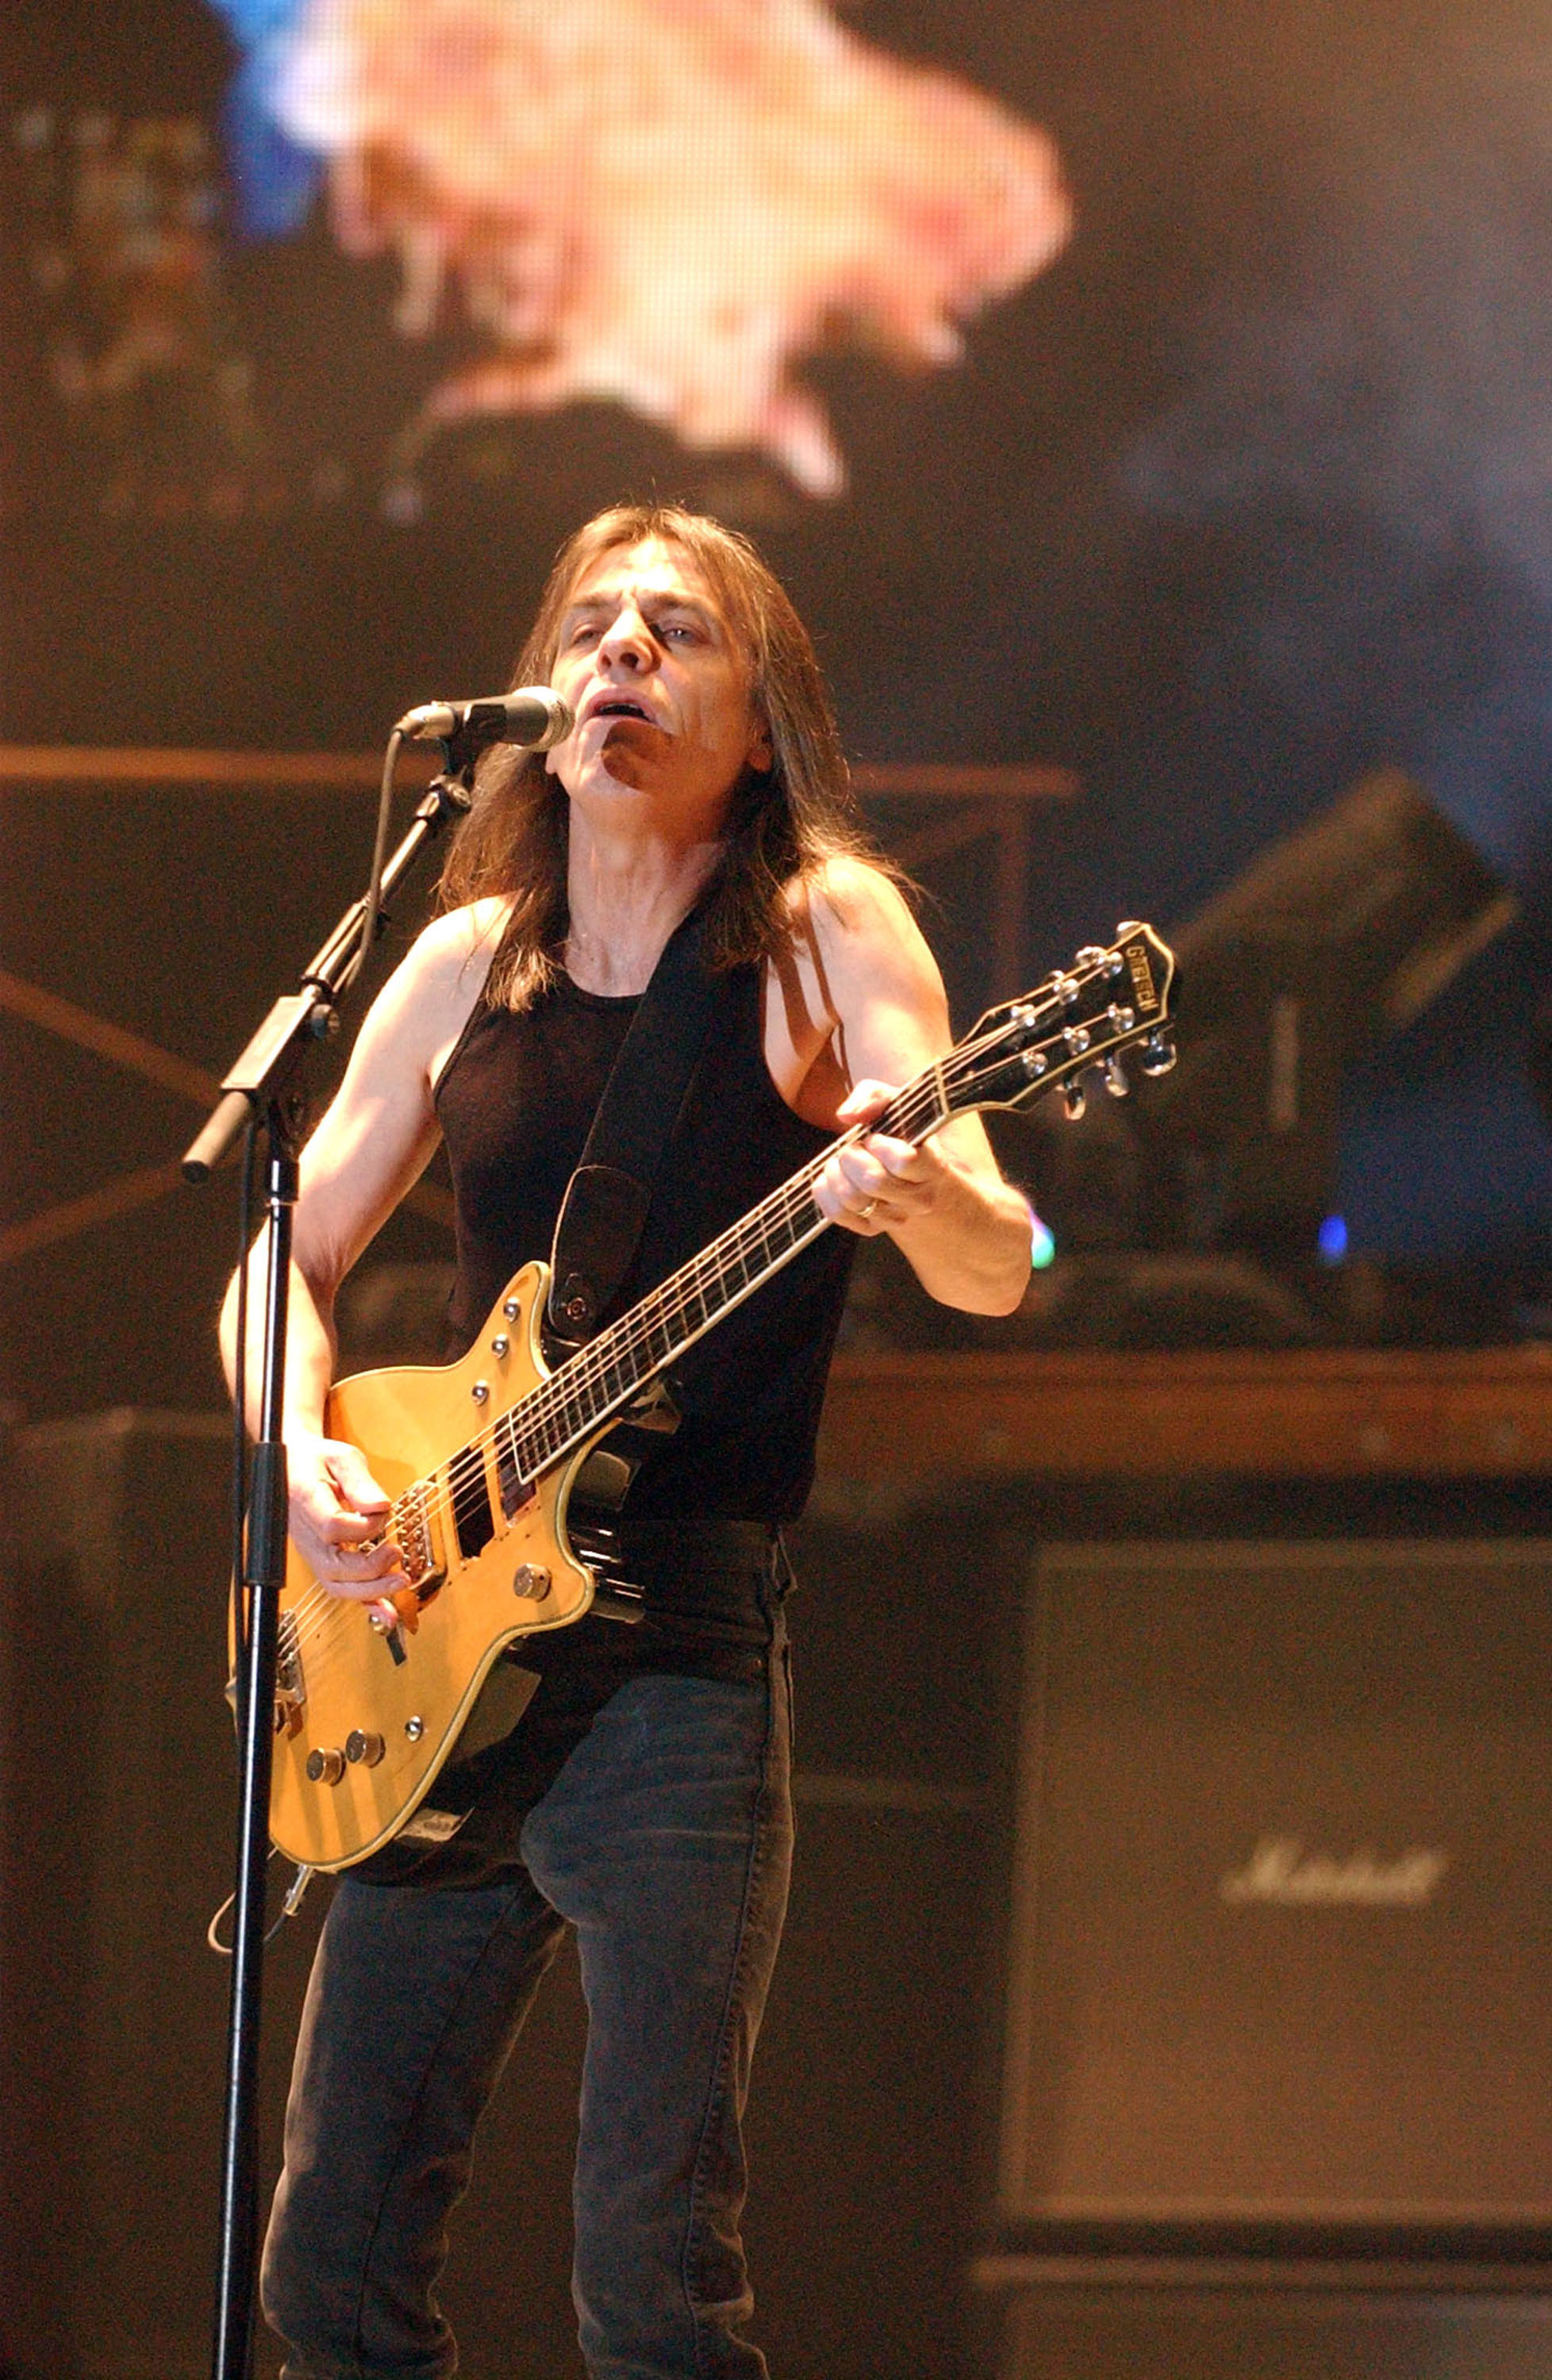 Malcolm Young                  AC/DC perform at the Ahoy stadium during their Black Ice World Tour 2008-2009                  Rotterdam                                    Featuring: Malcolm Young                  Where: Holland                  When: 13 Mar 2009                  Credit: WENN